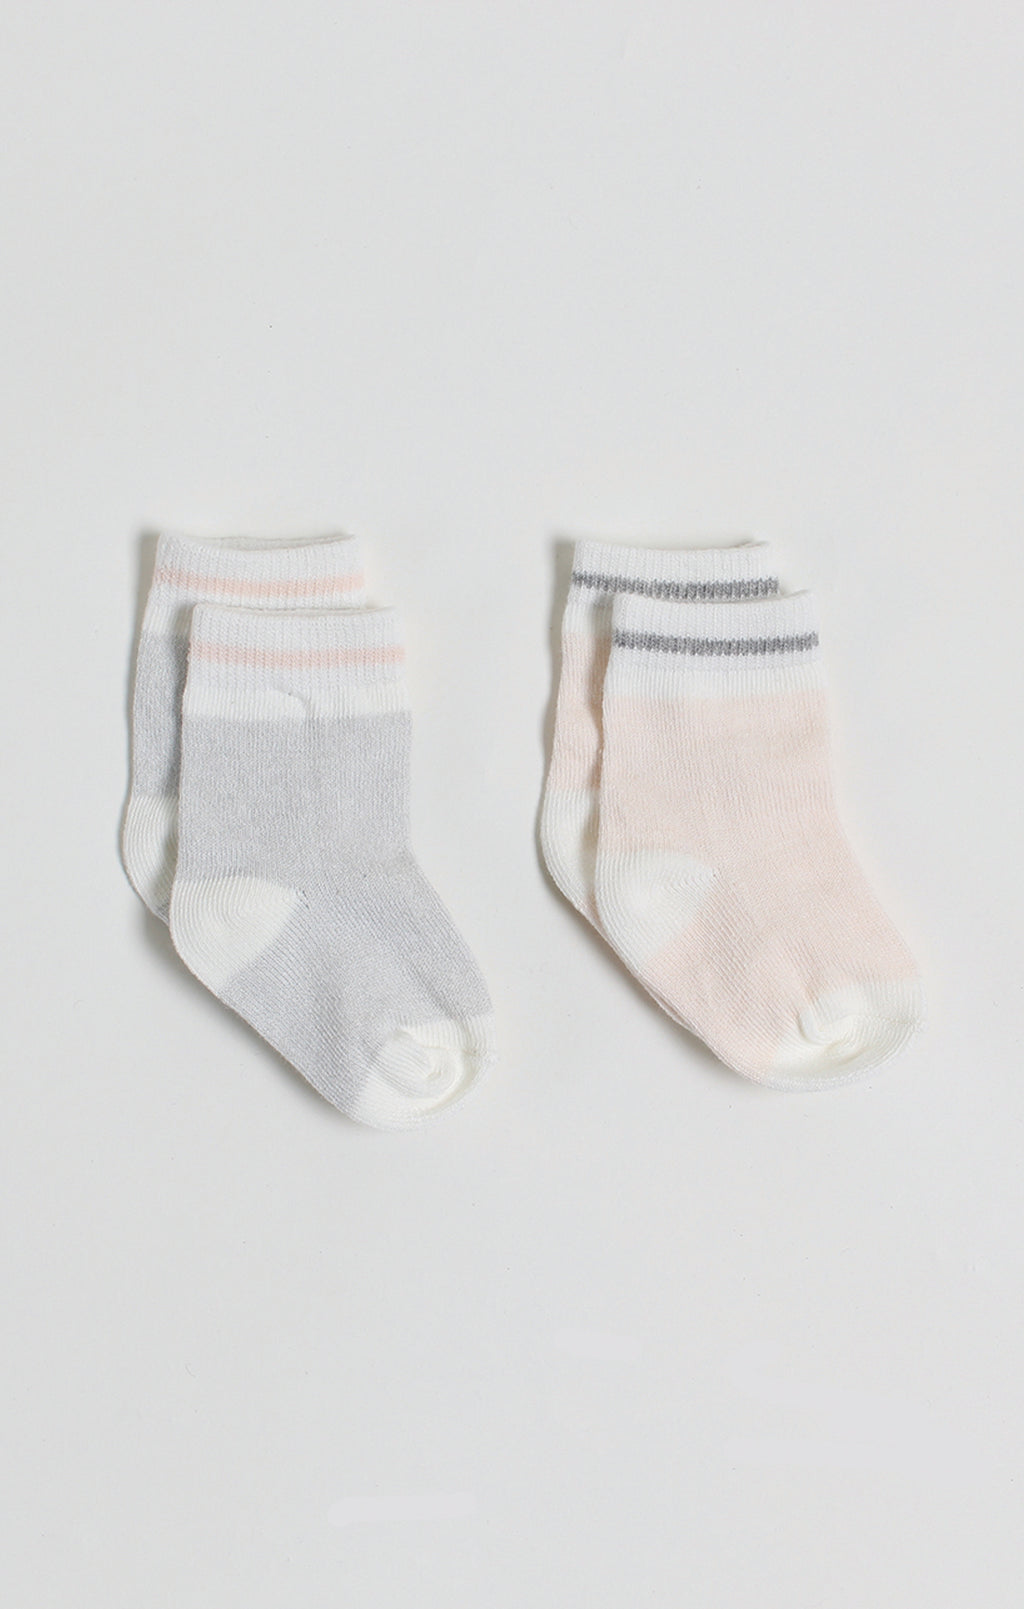 Socks - 2 Pk of Gray & Pink Baby Boy Boot Socks | Baby Accessories